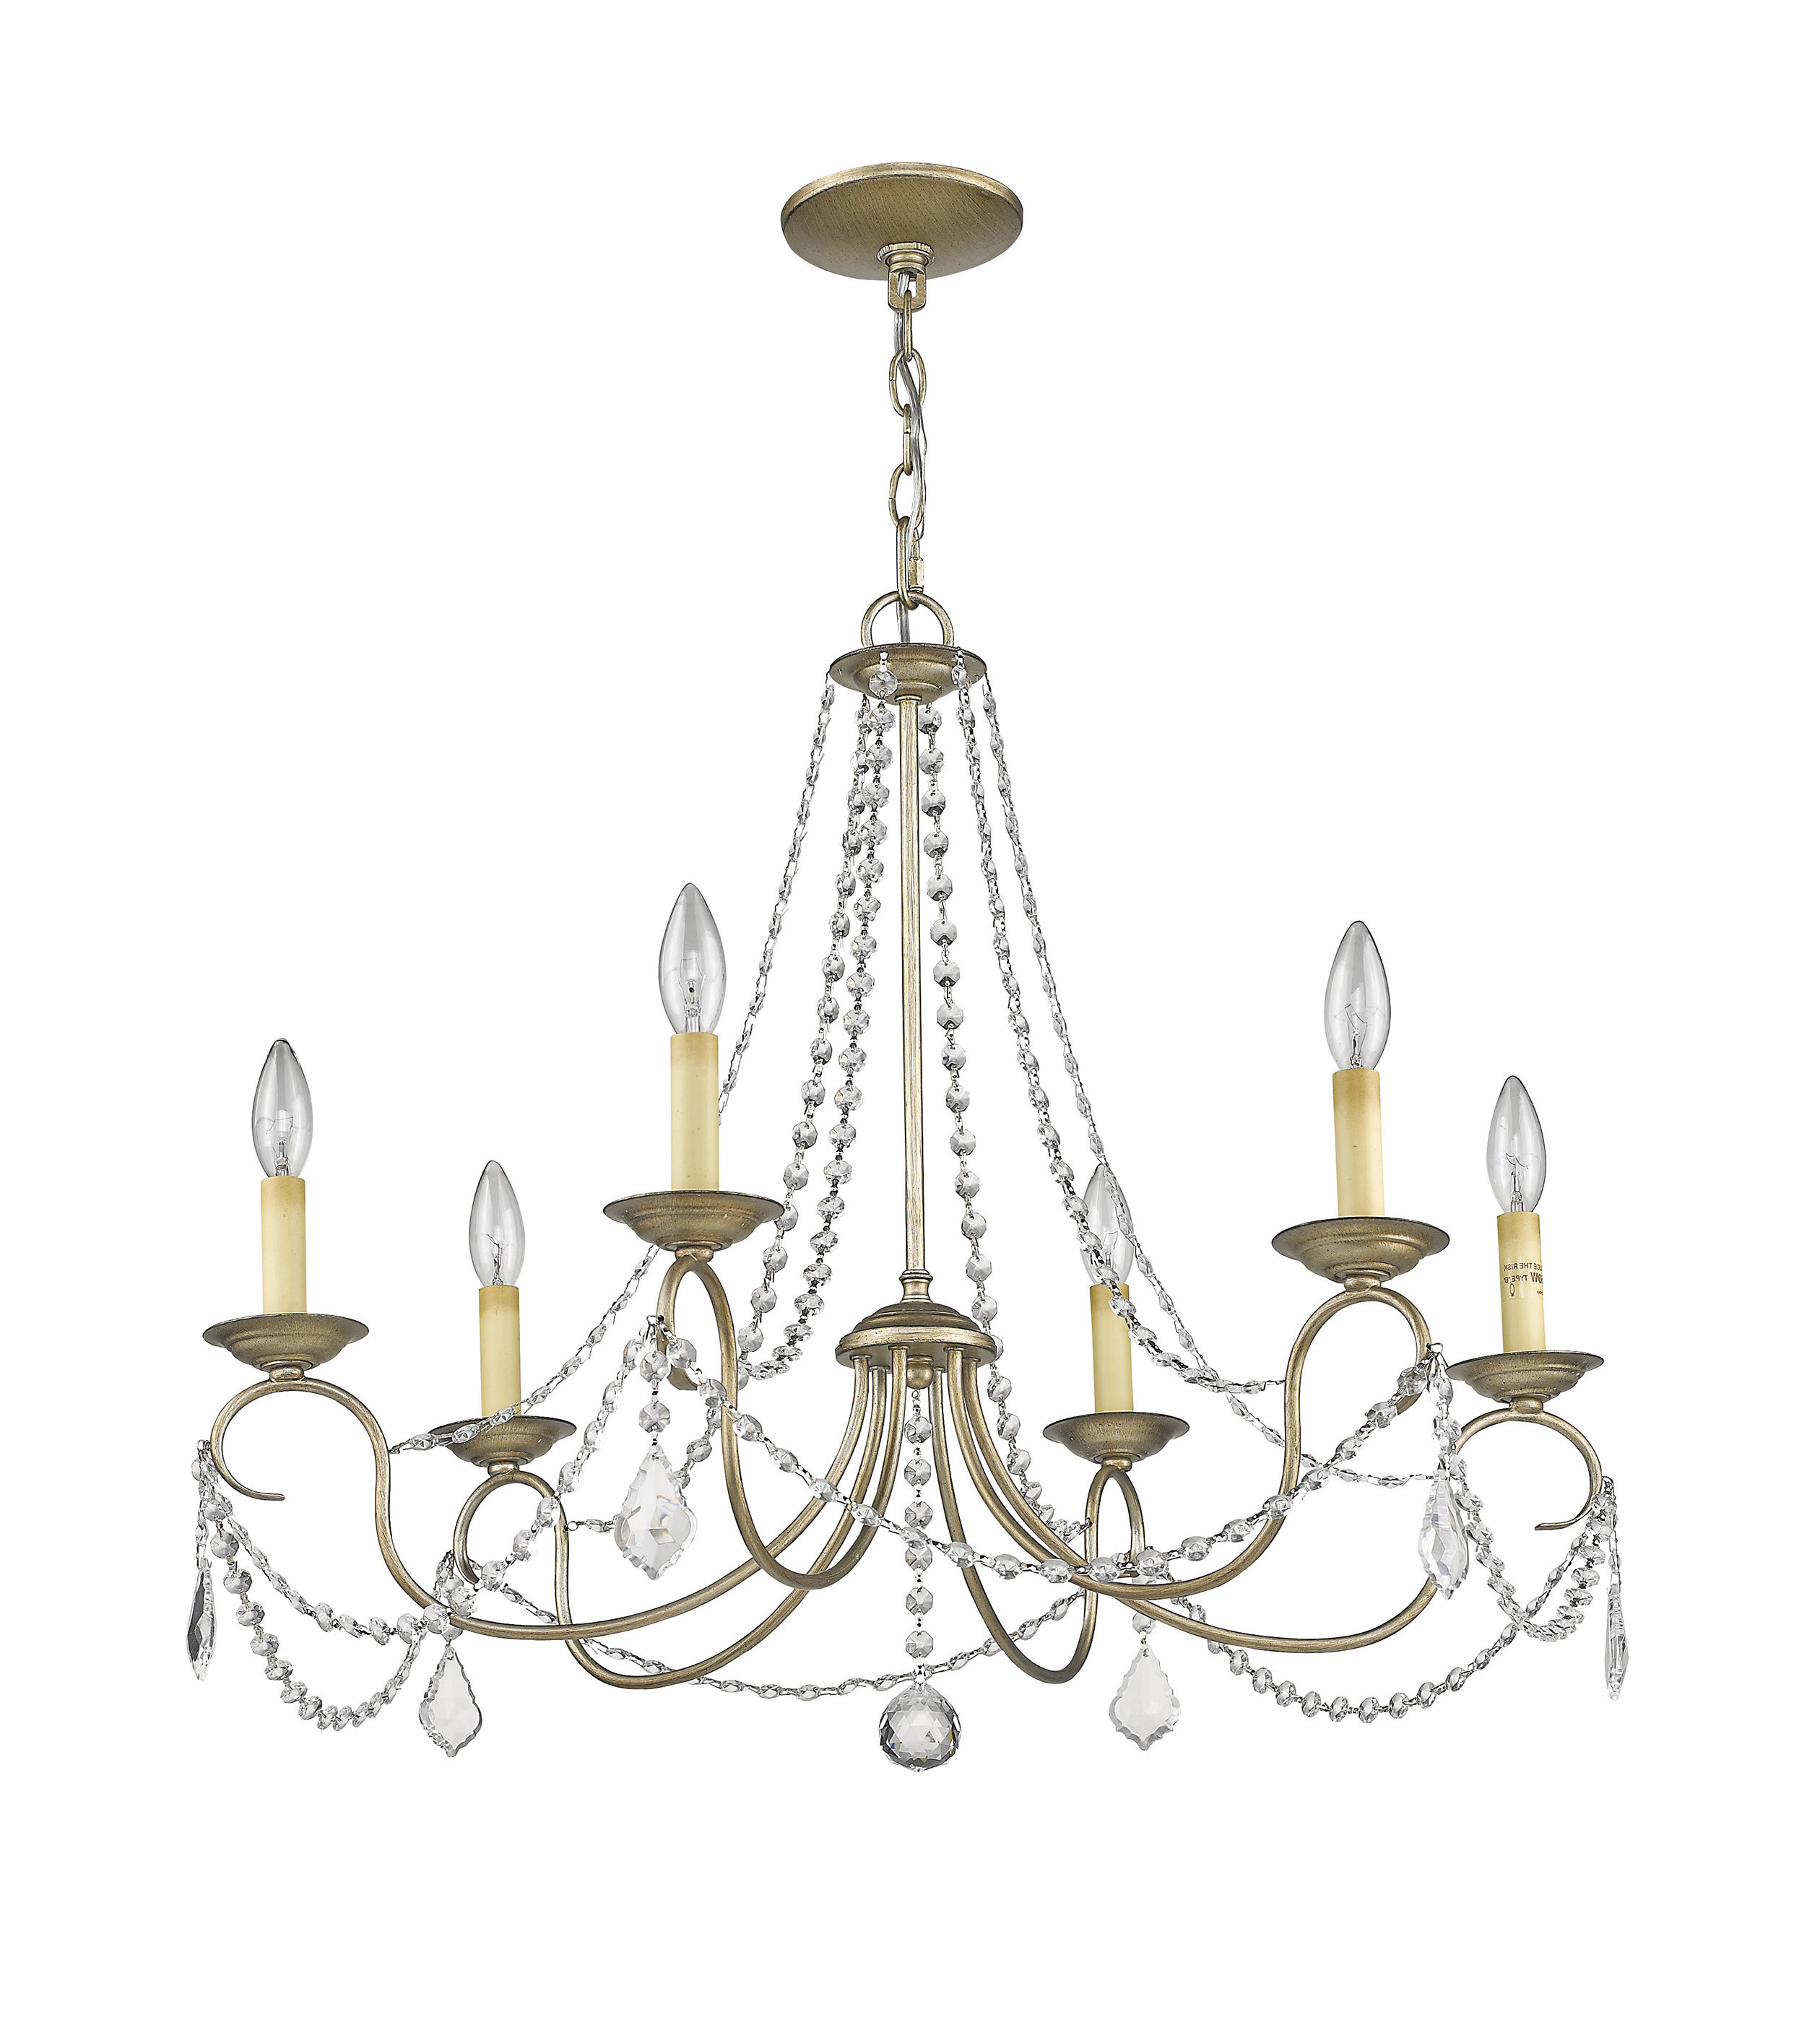 Diaz 6 Light Candle Style Chandeliers Pertaining To 2020 Devana 6 Light Candle Style Chandelier (View 6 of 20)